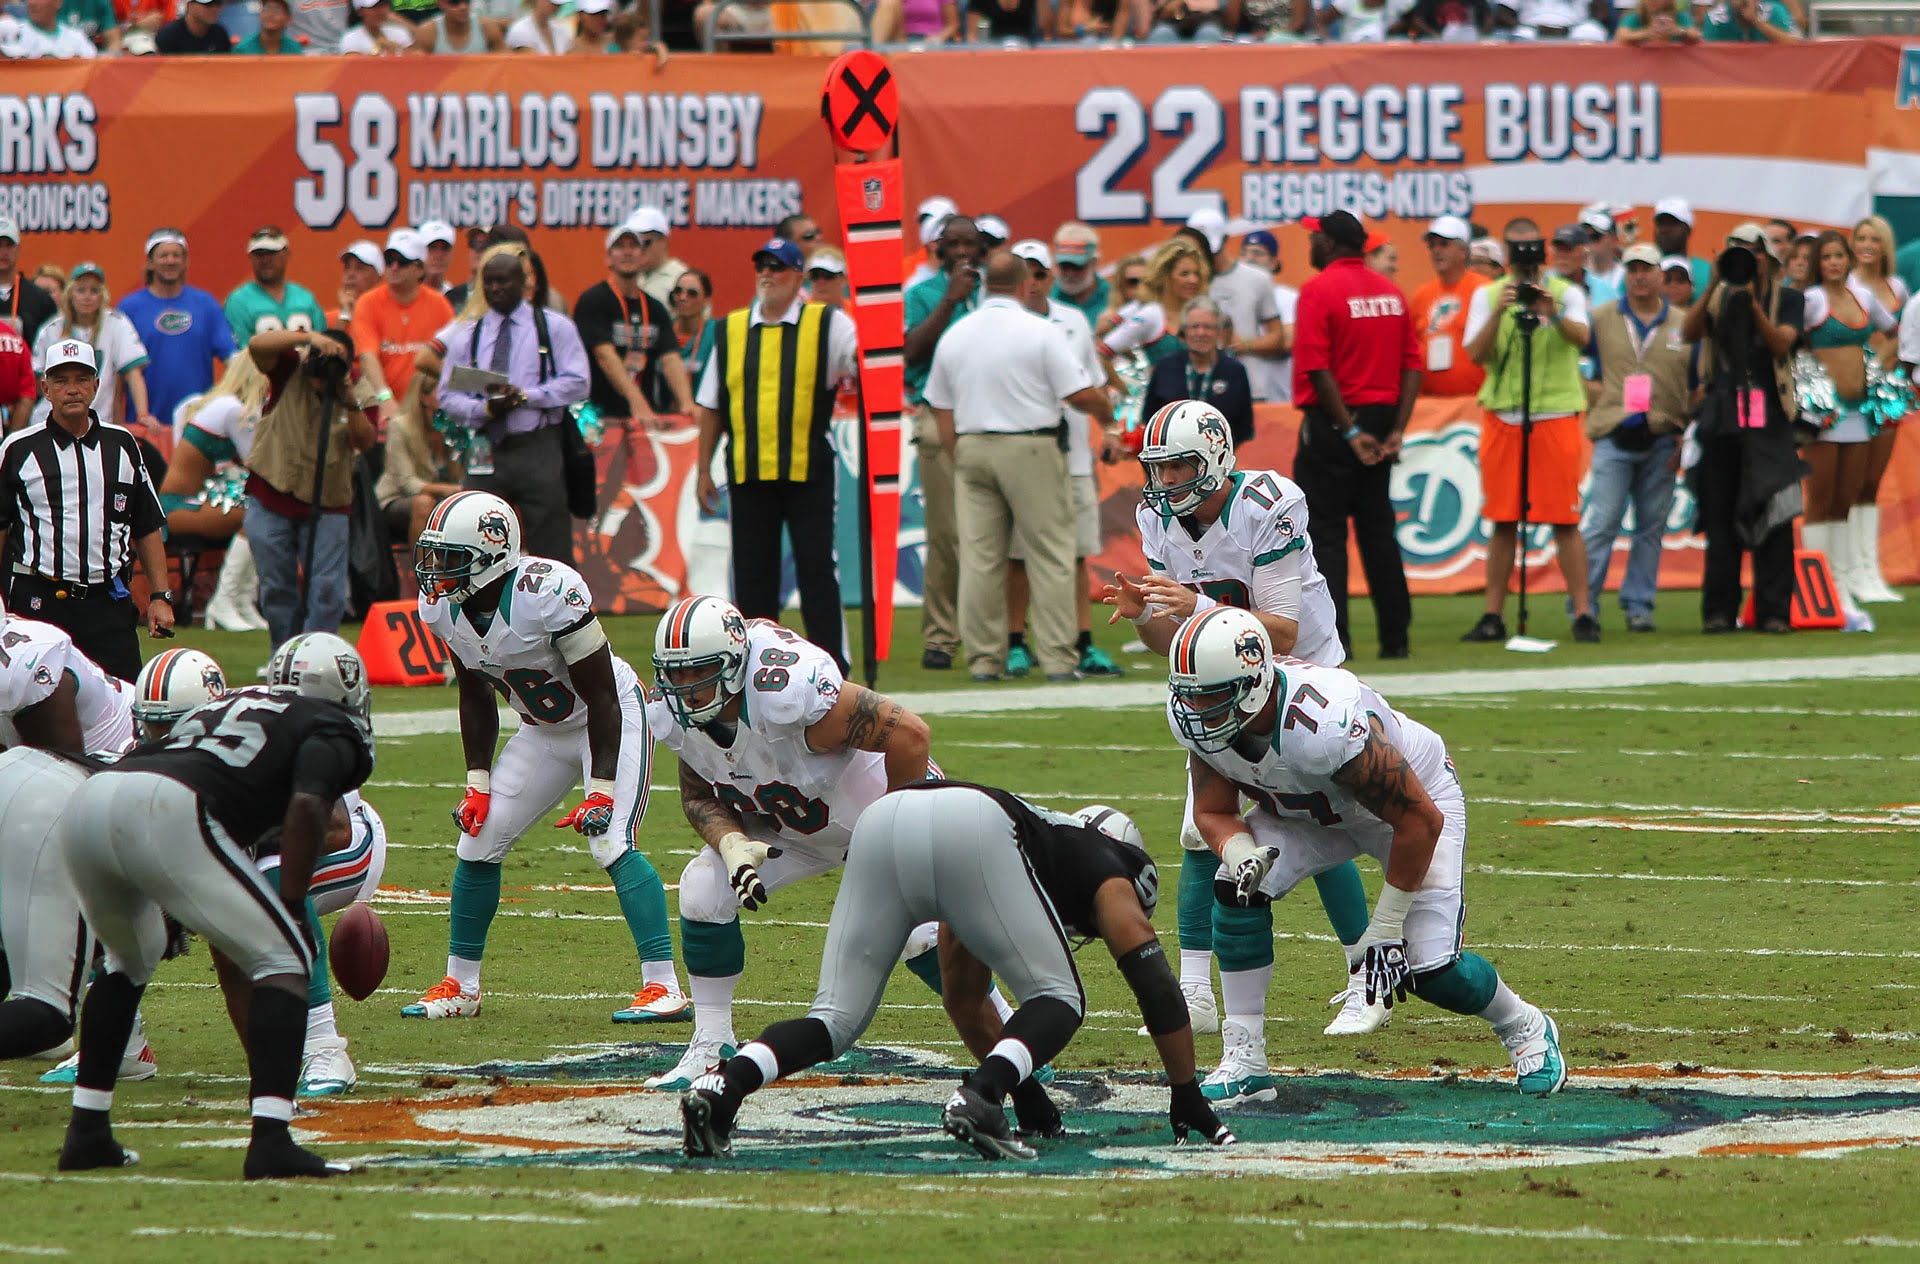 Miami Dolphins Firing BLM Players Who Kneel During National Anthem At NFL Game Is Fake News